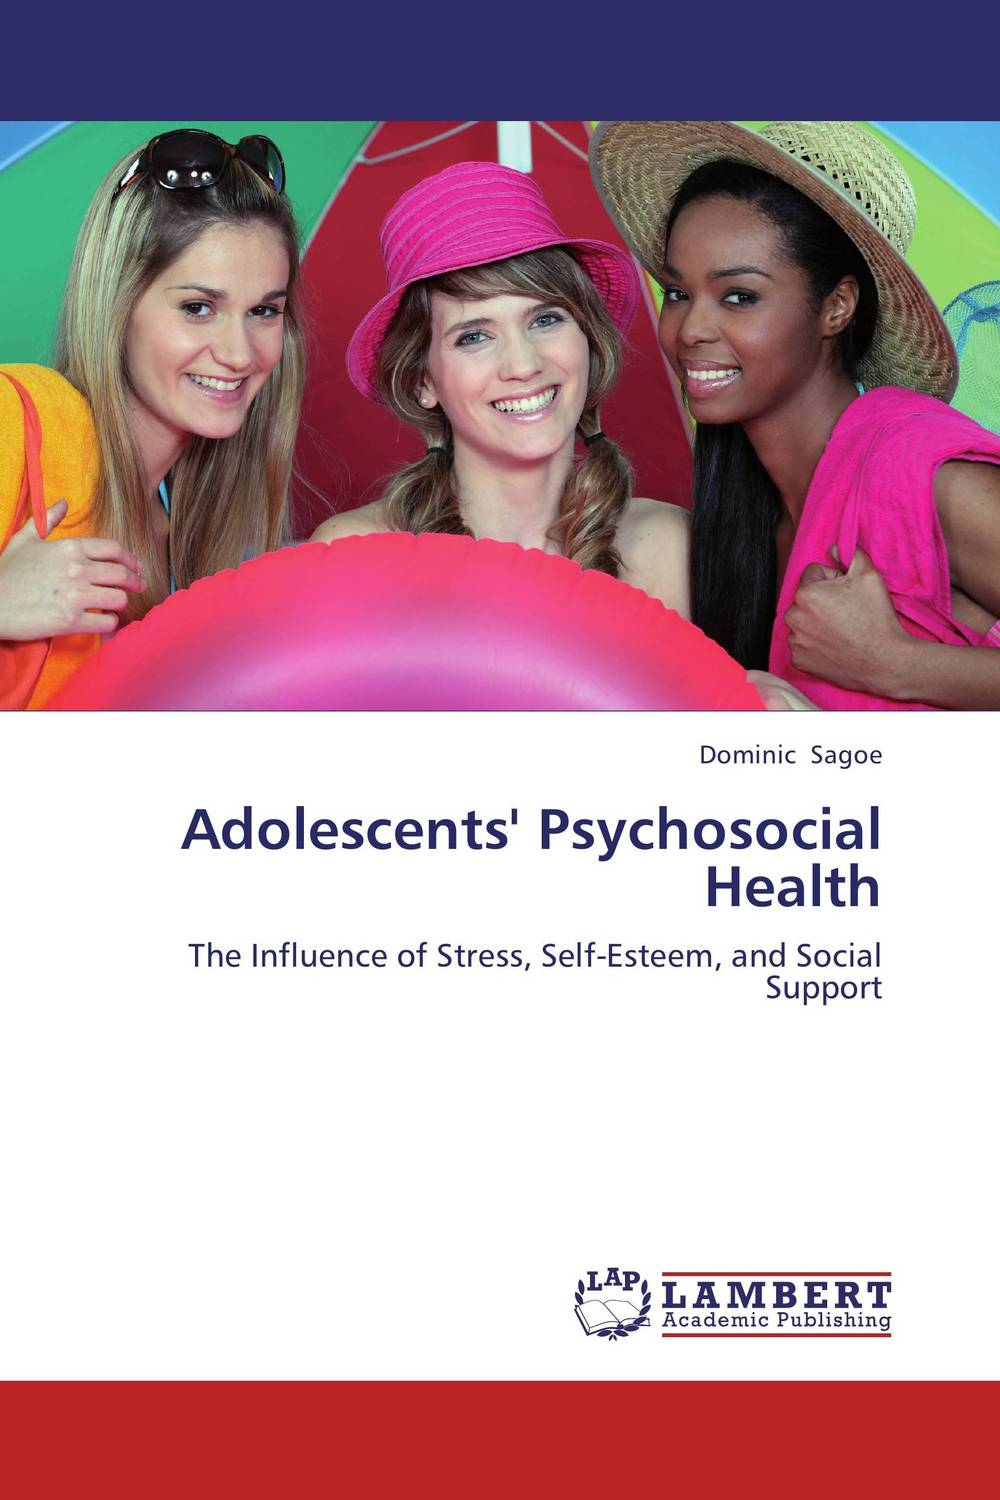 Adolescents' Psychosocial Health